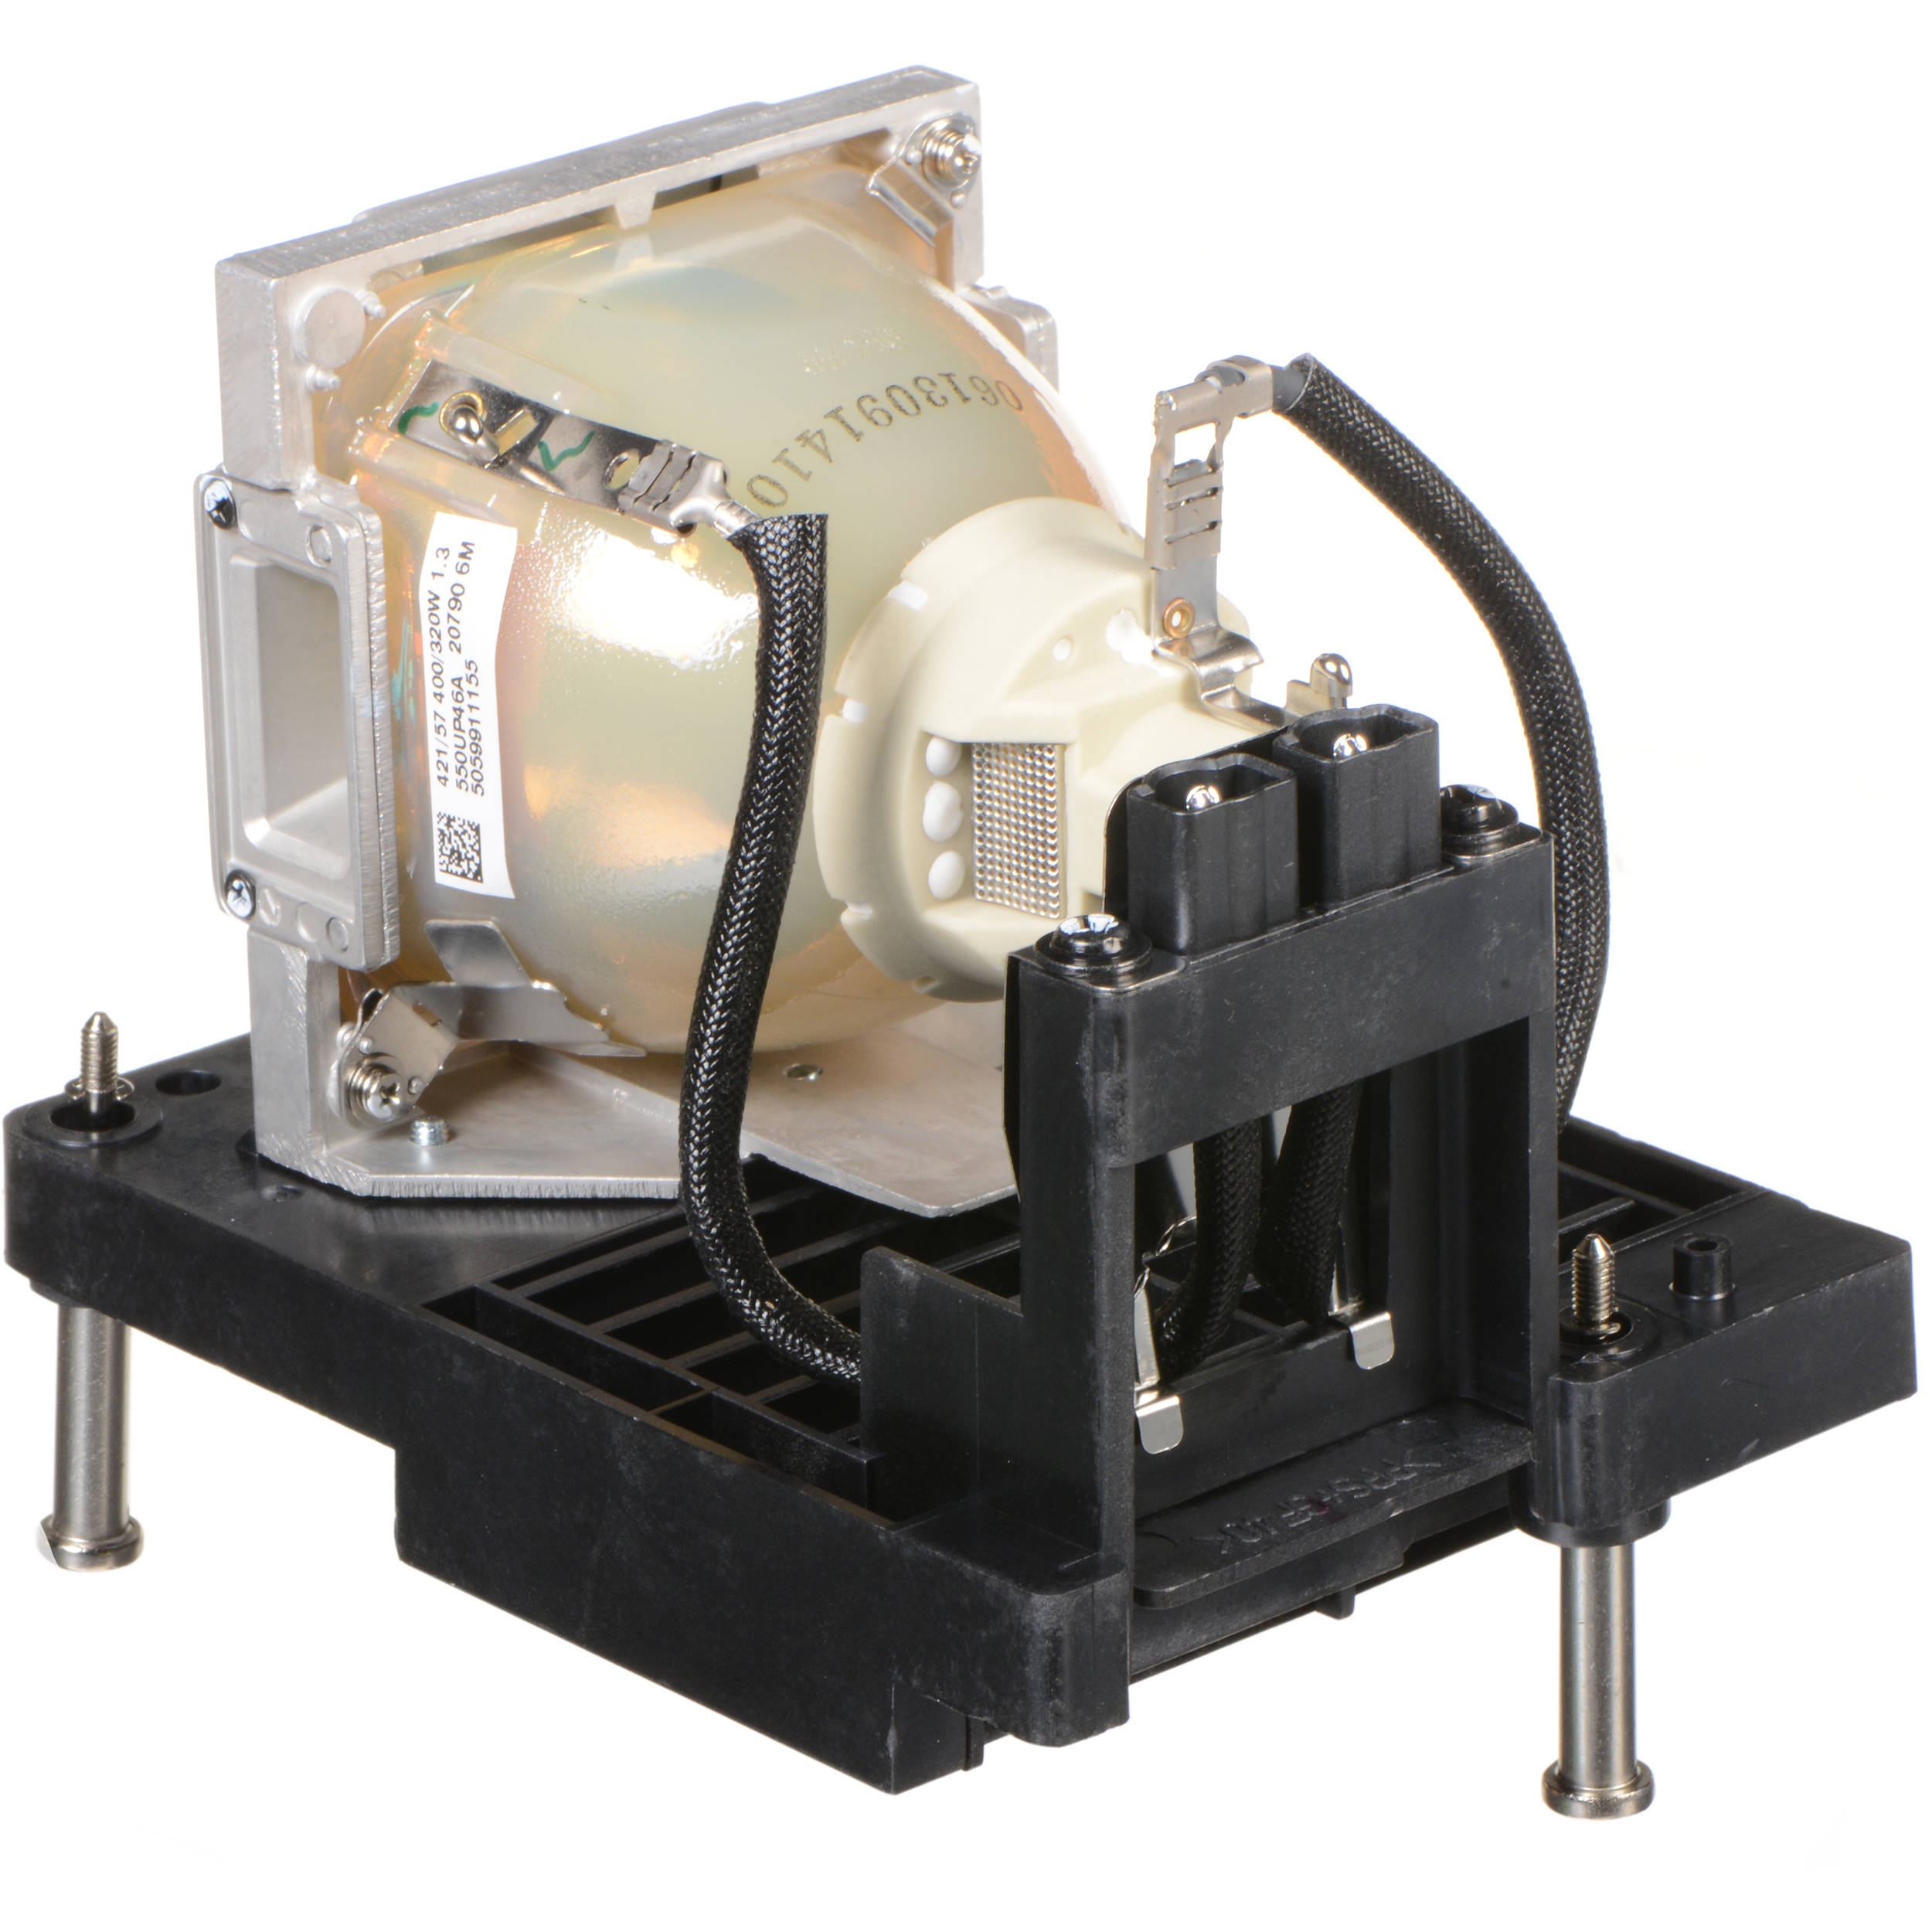 Power by Philips IET Lamps with 1 Year Warranty Genuine OEM Replacement Lamp for NEC NP22LP Projector